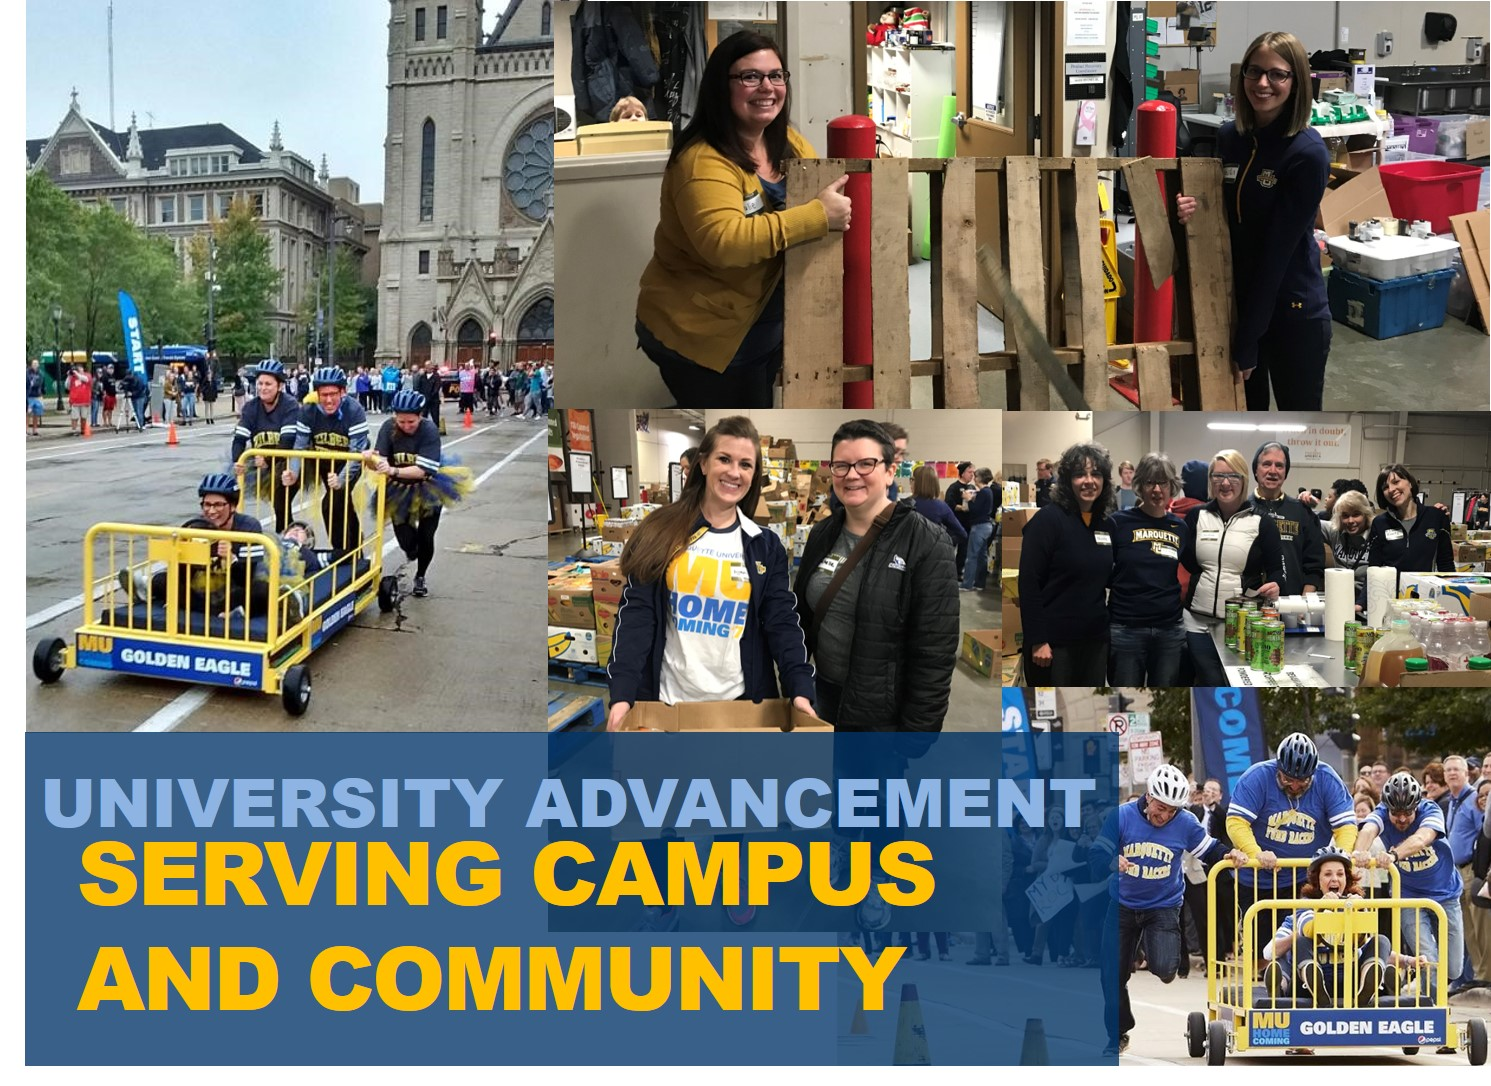 University Advancement Serving Campus and Community